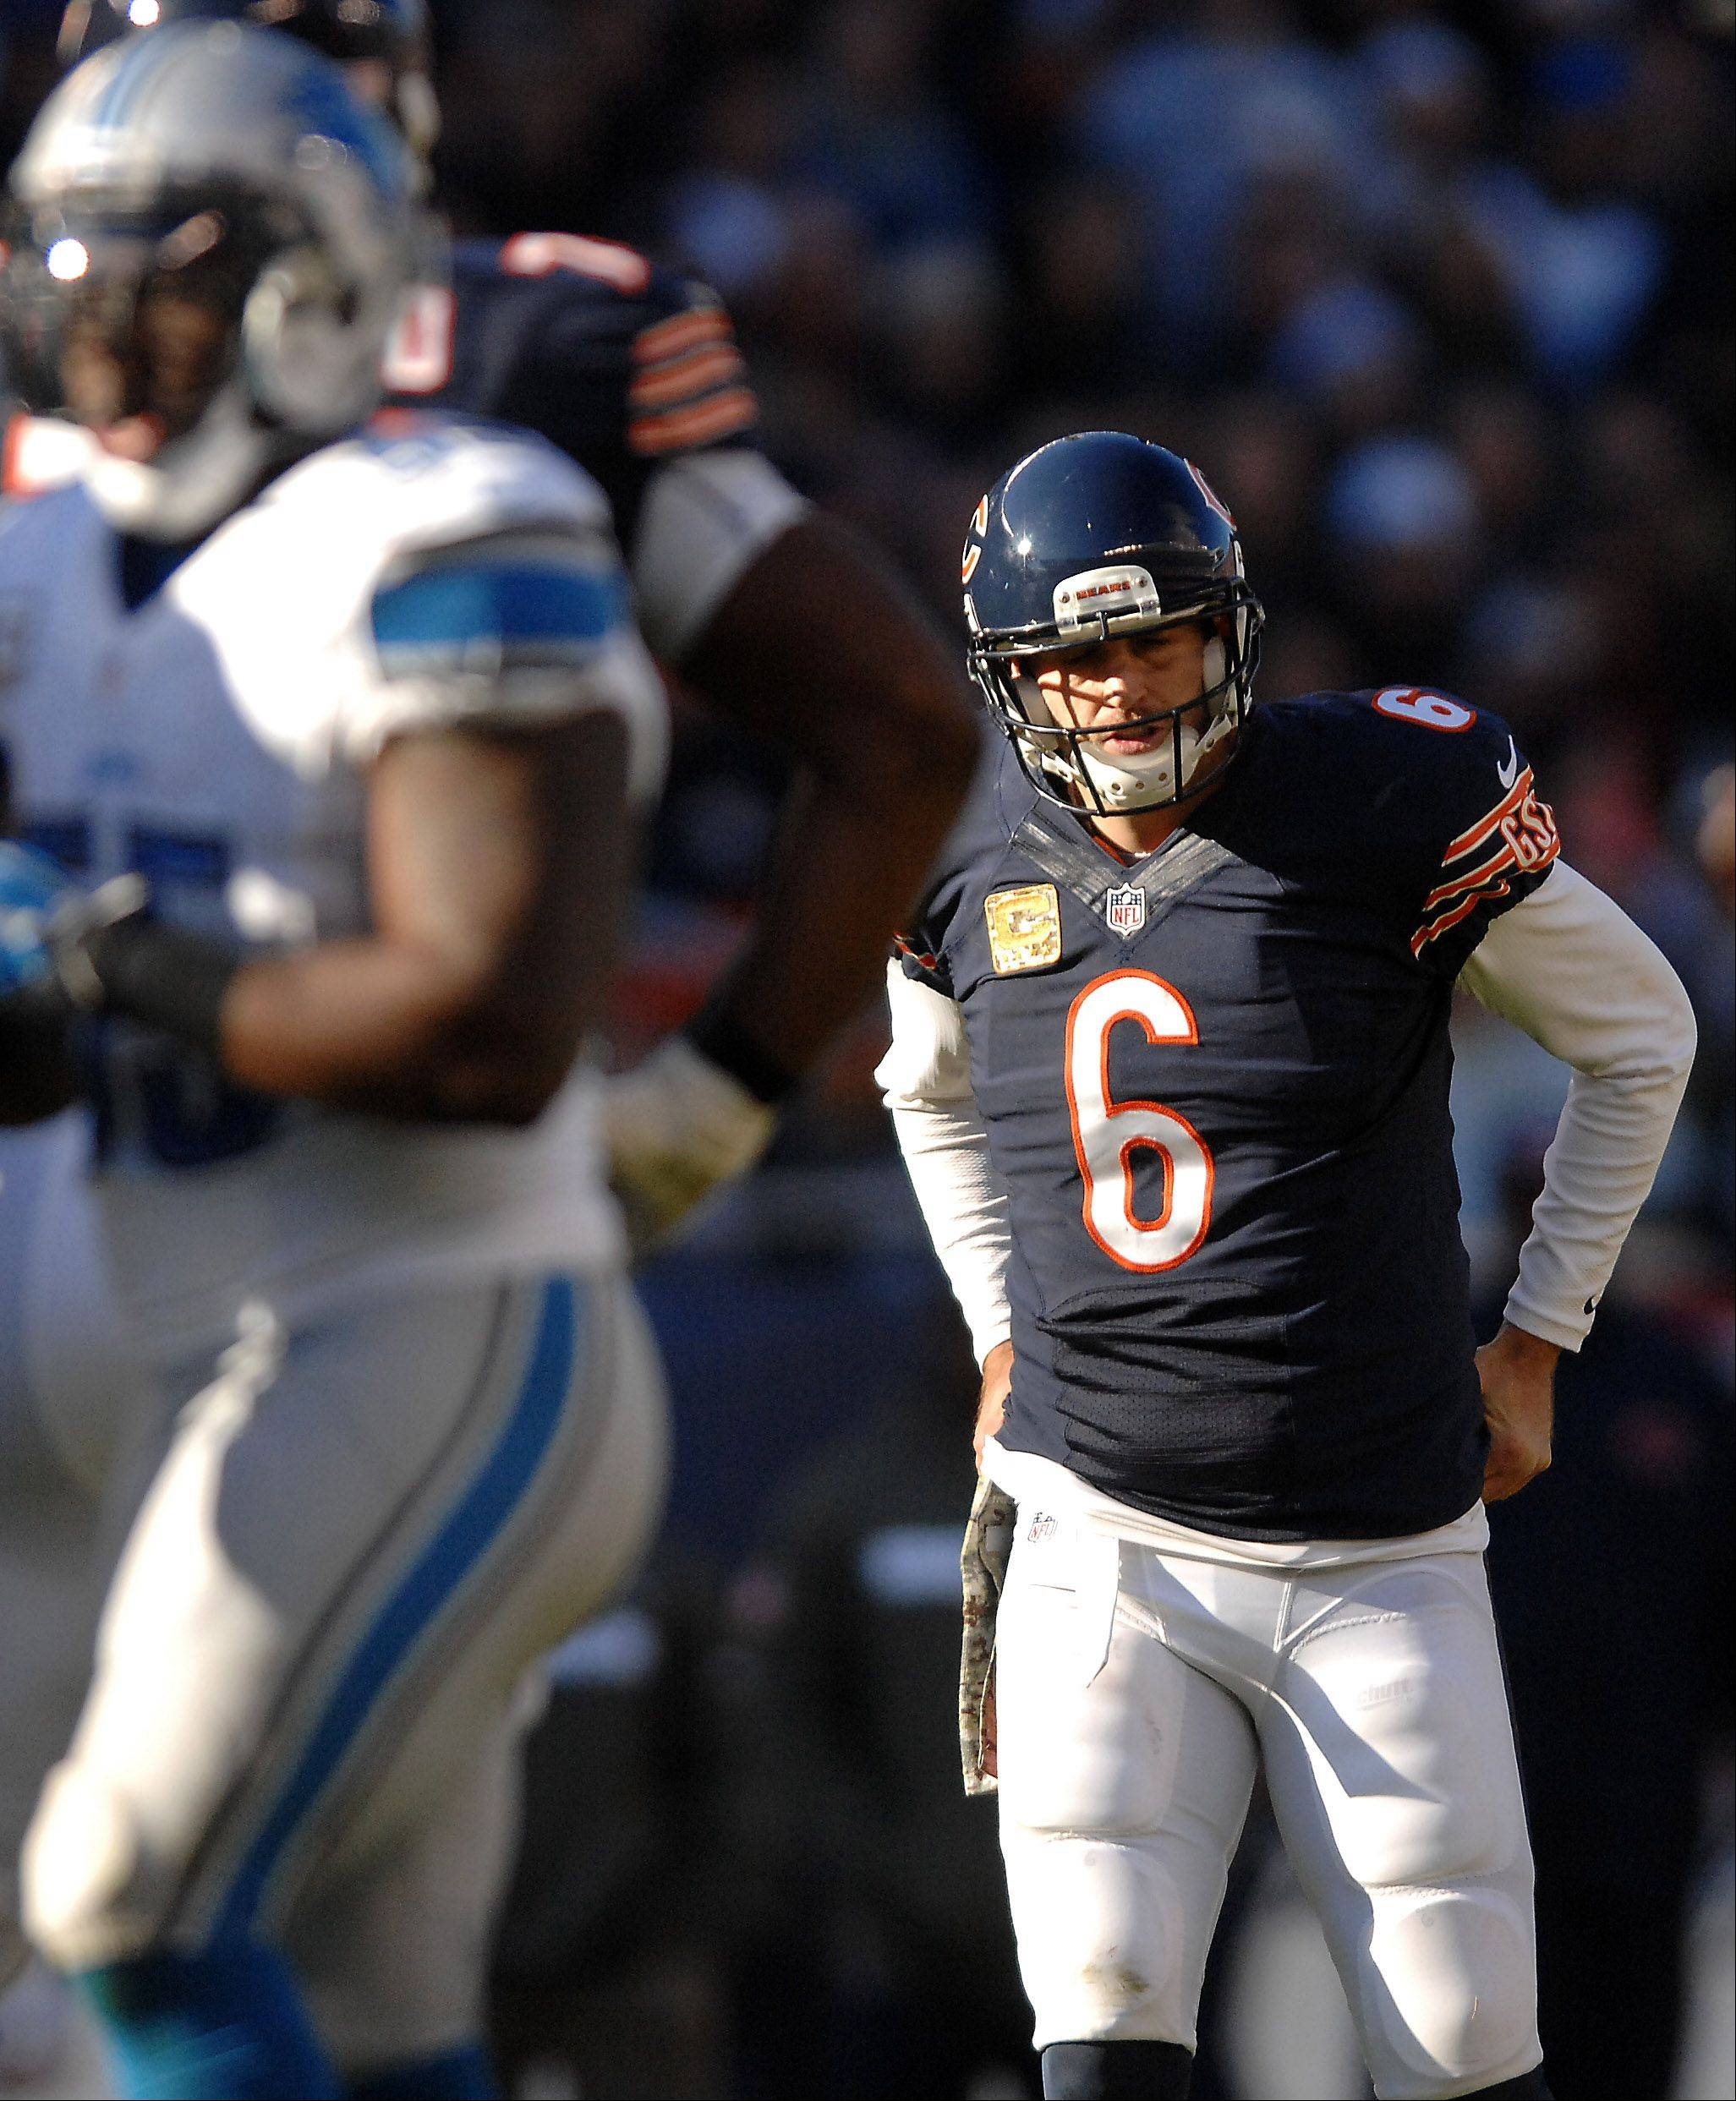 Chicago Bears quarterback Jay Cutler (6) gets up slowly after a third quarter play during Sunday's game in Chicago.